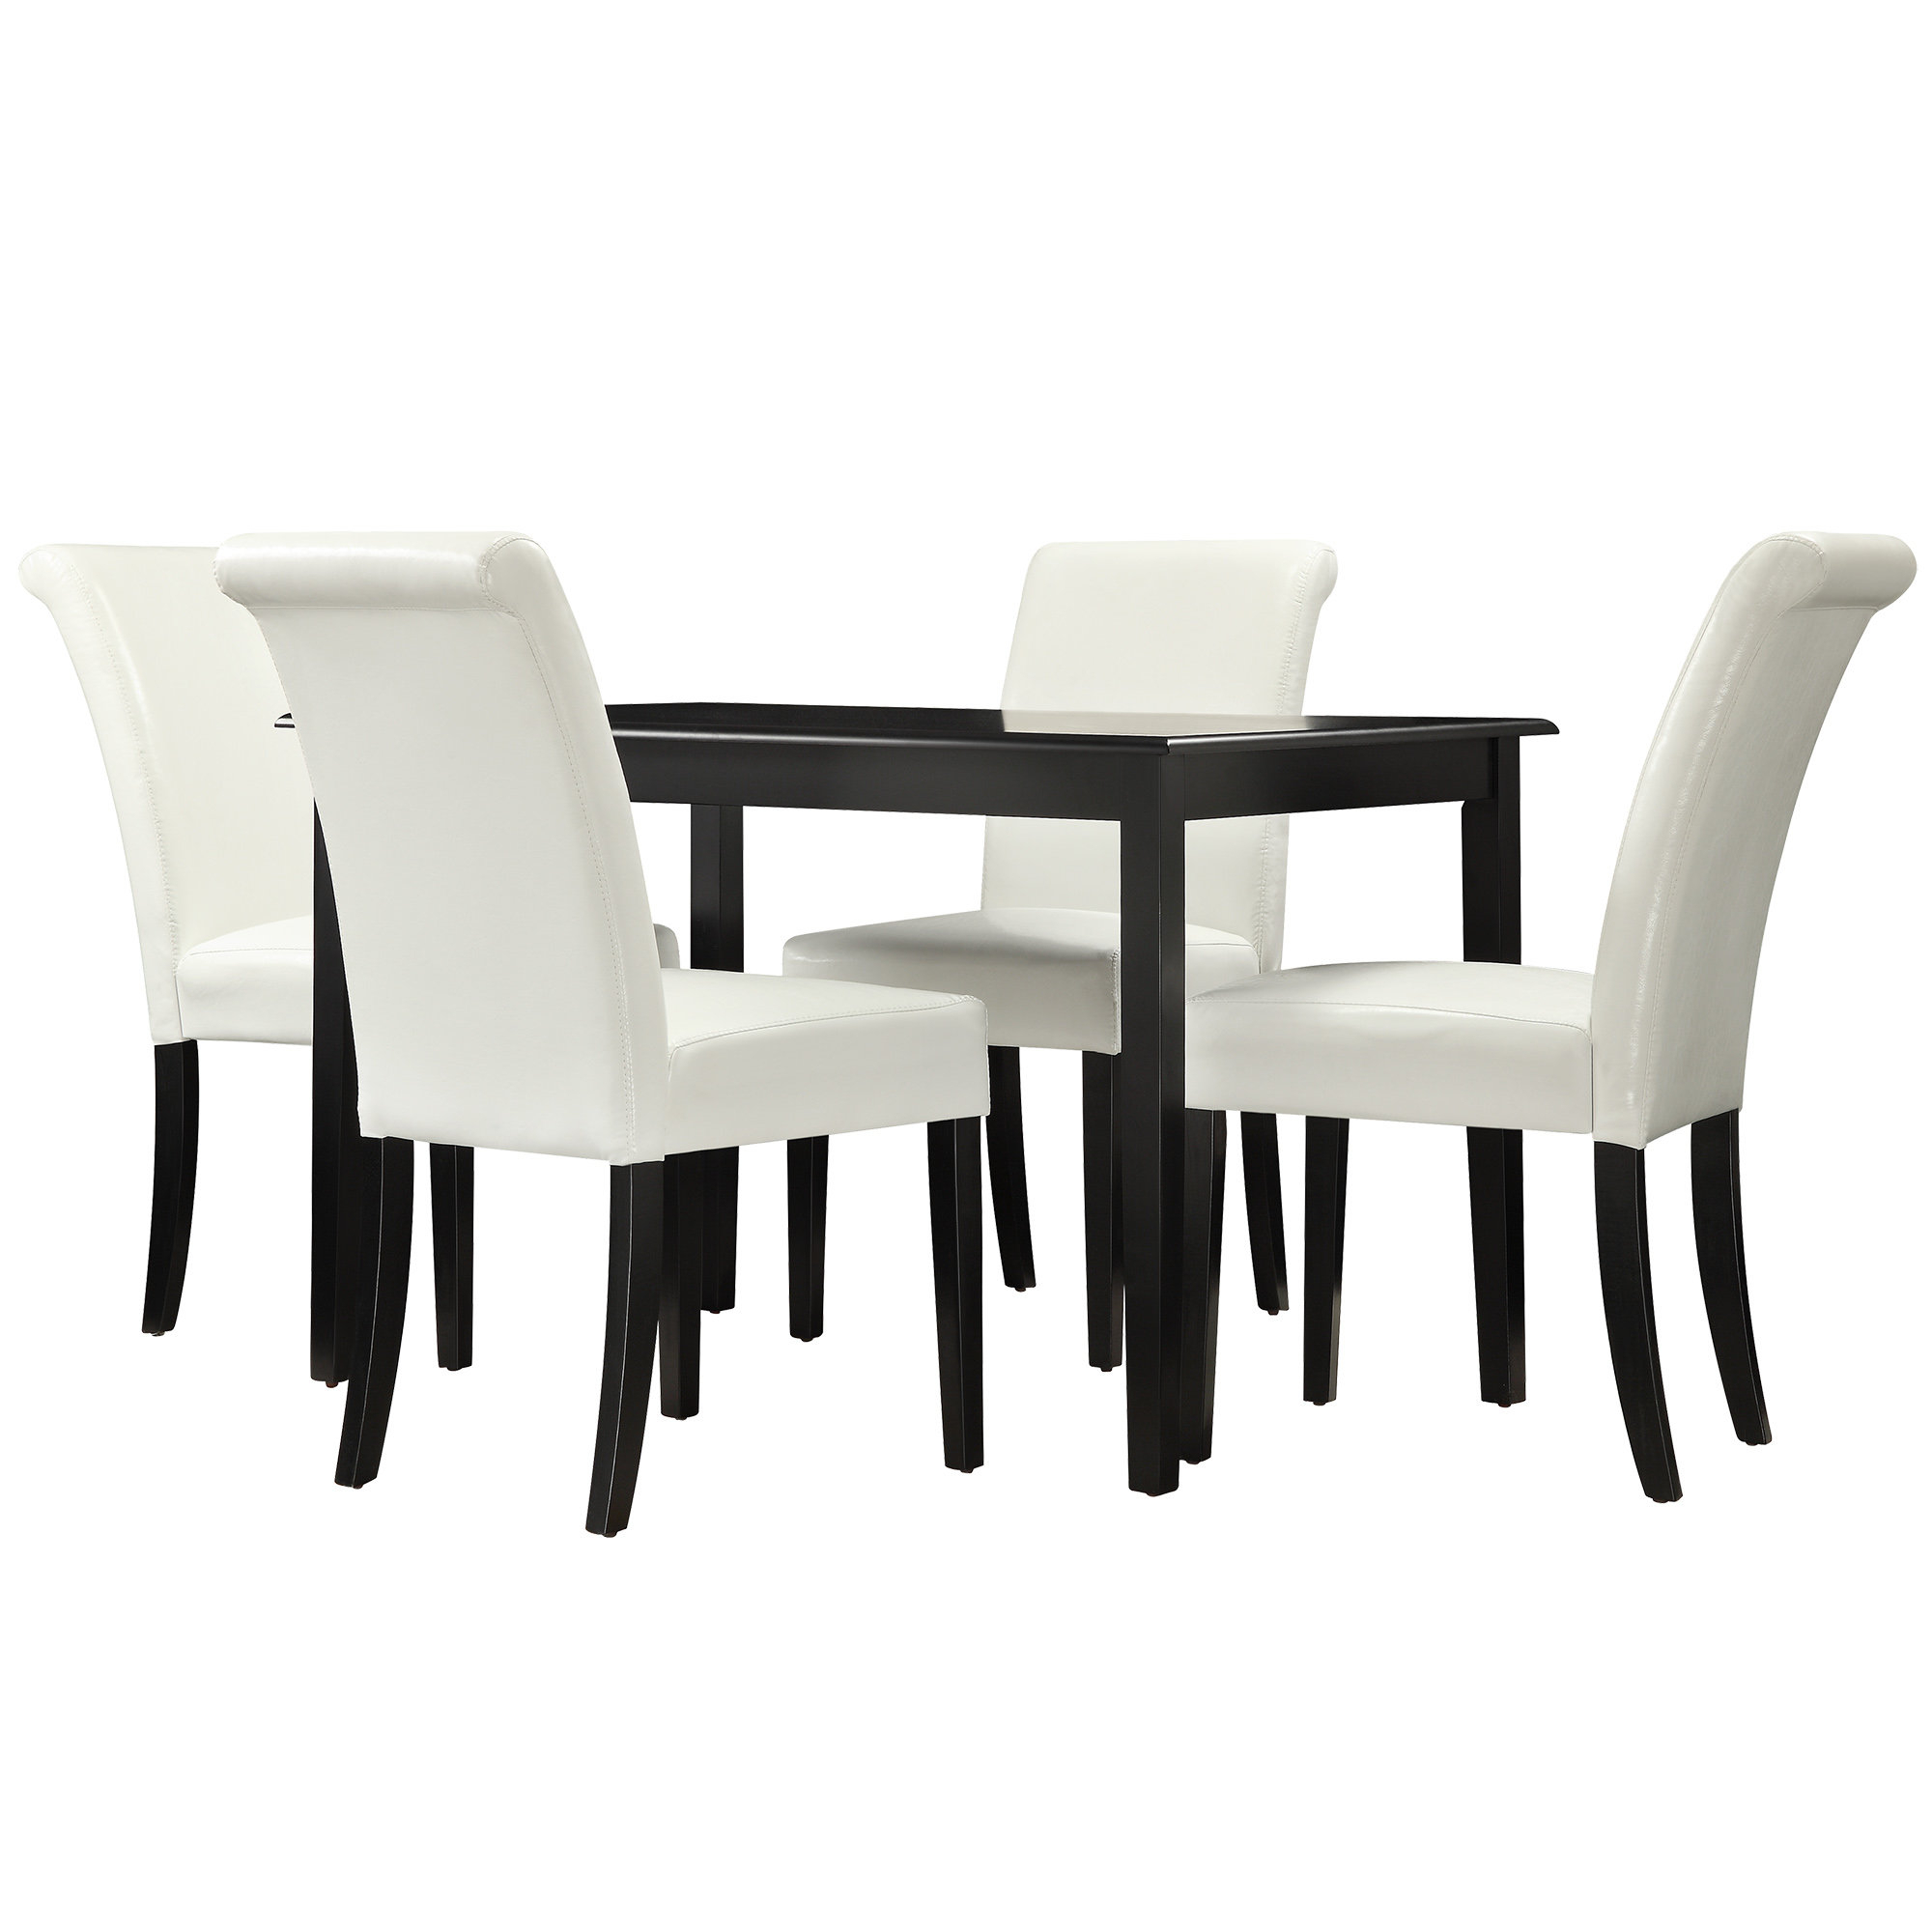 Most Recently Released Nordstrom 5 Piece Dining Set Within Anette 3 Piece Counter Height Dining Sets (View 12 of 20)